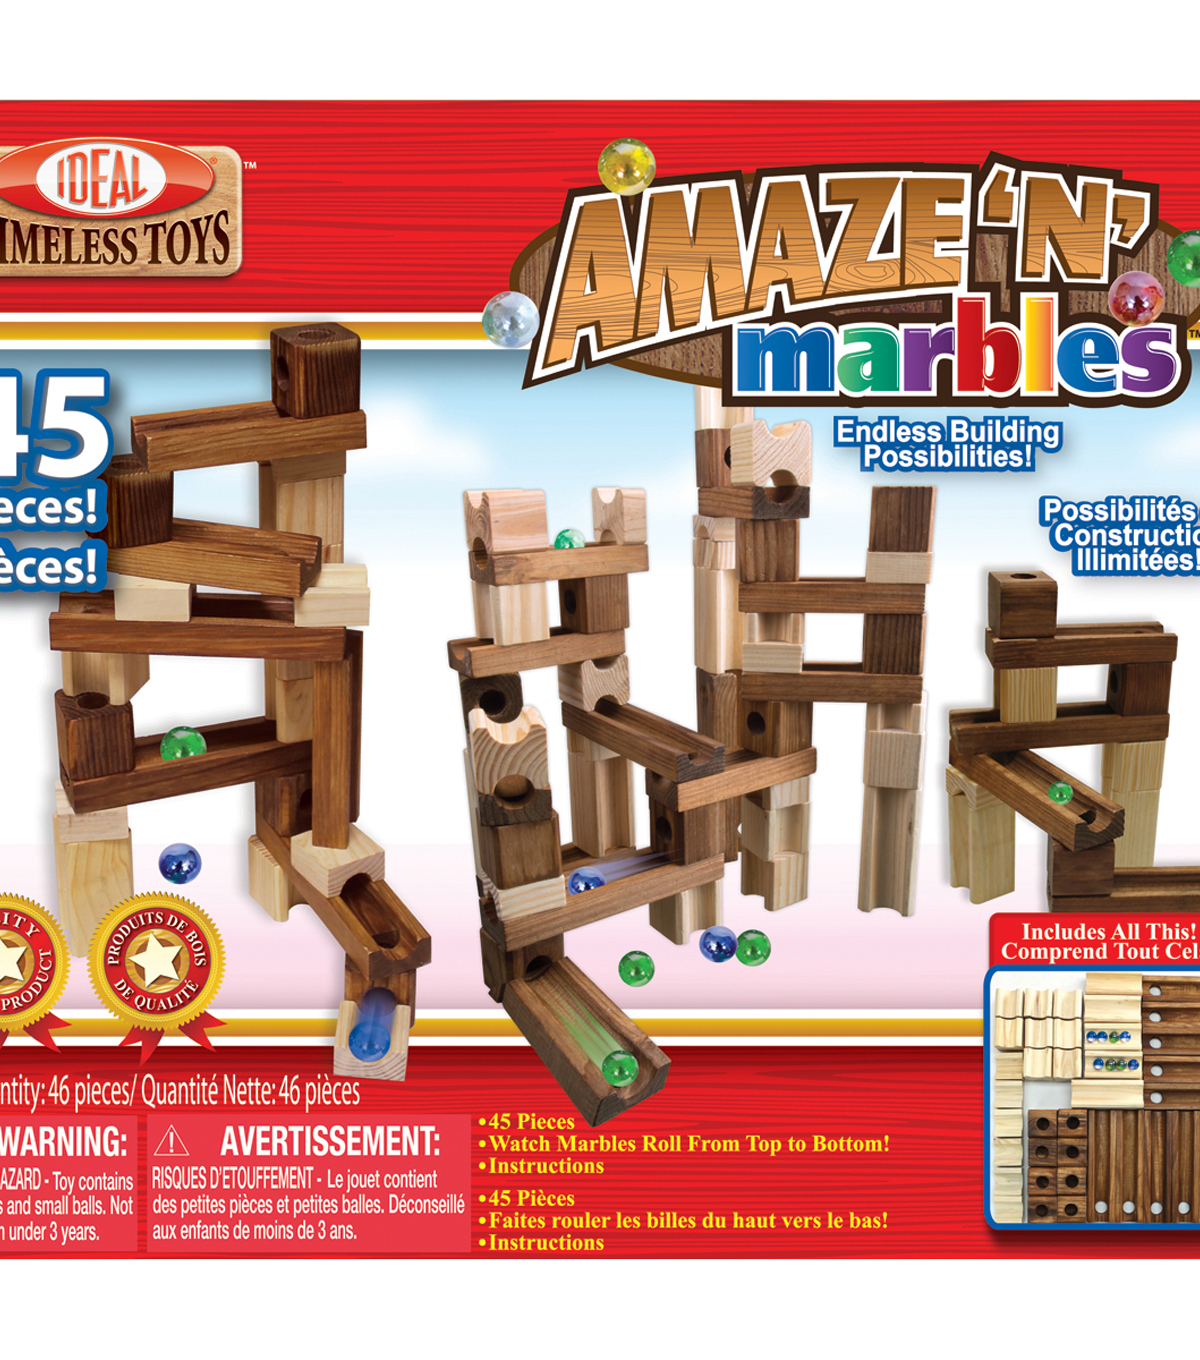 Ideal Amaze ???N??? Marbles Classic Wood Construction Set